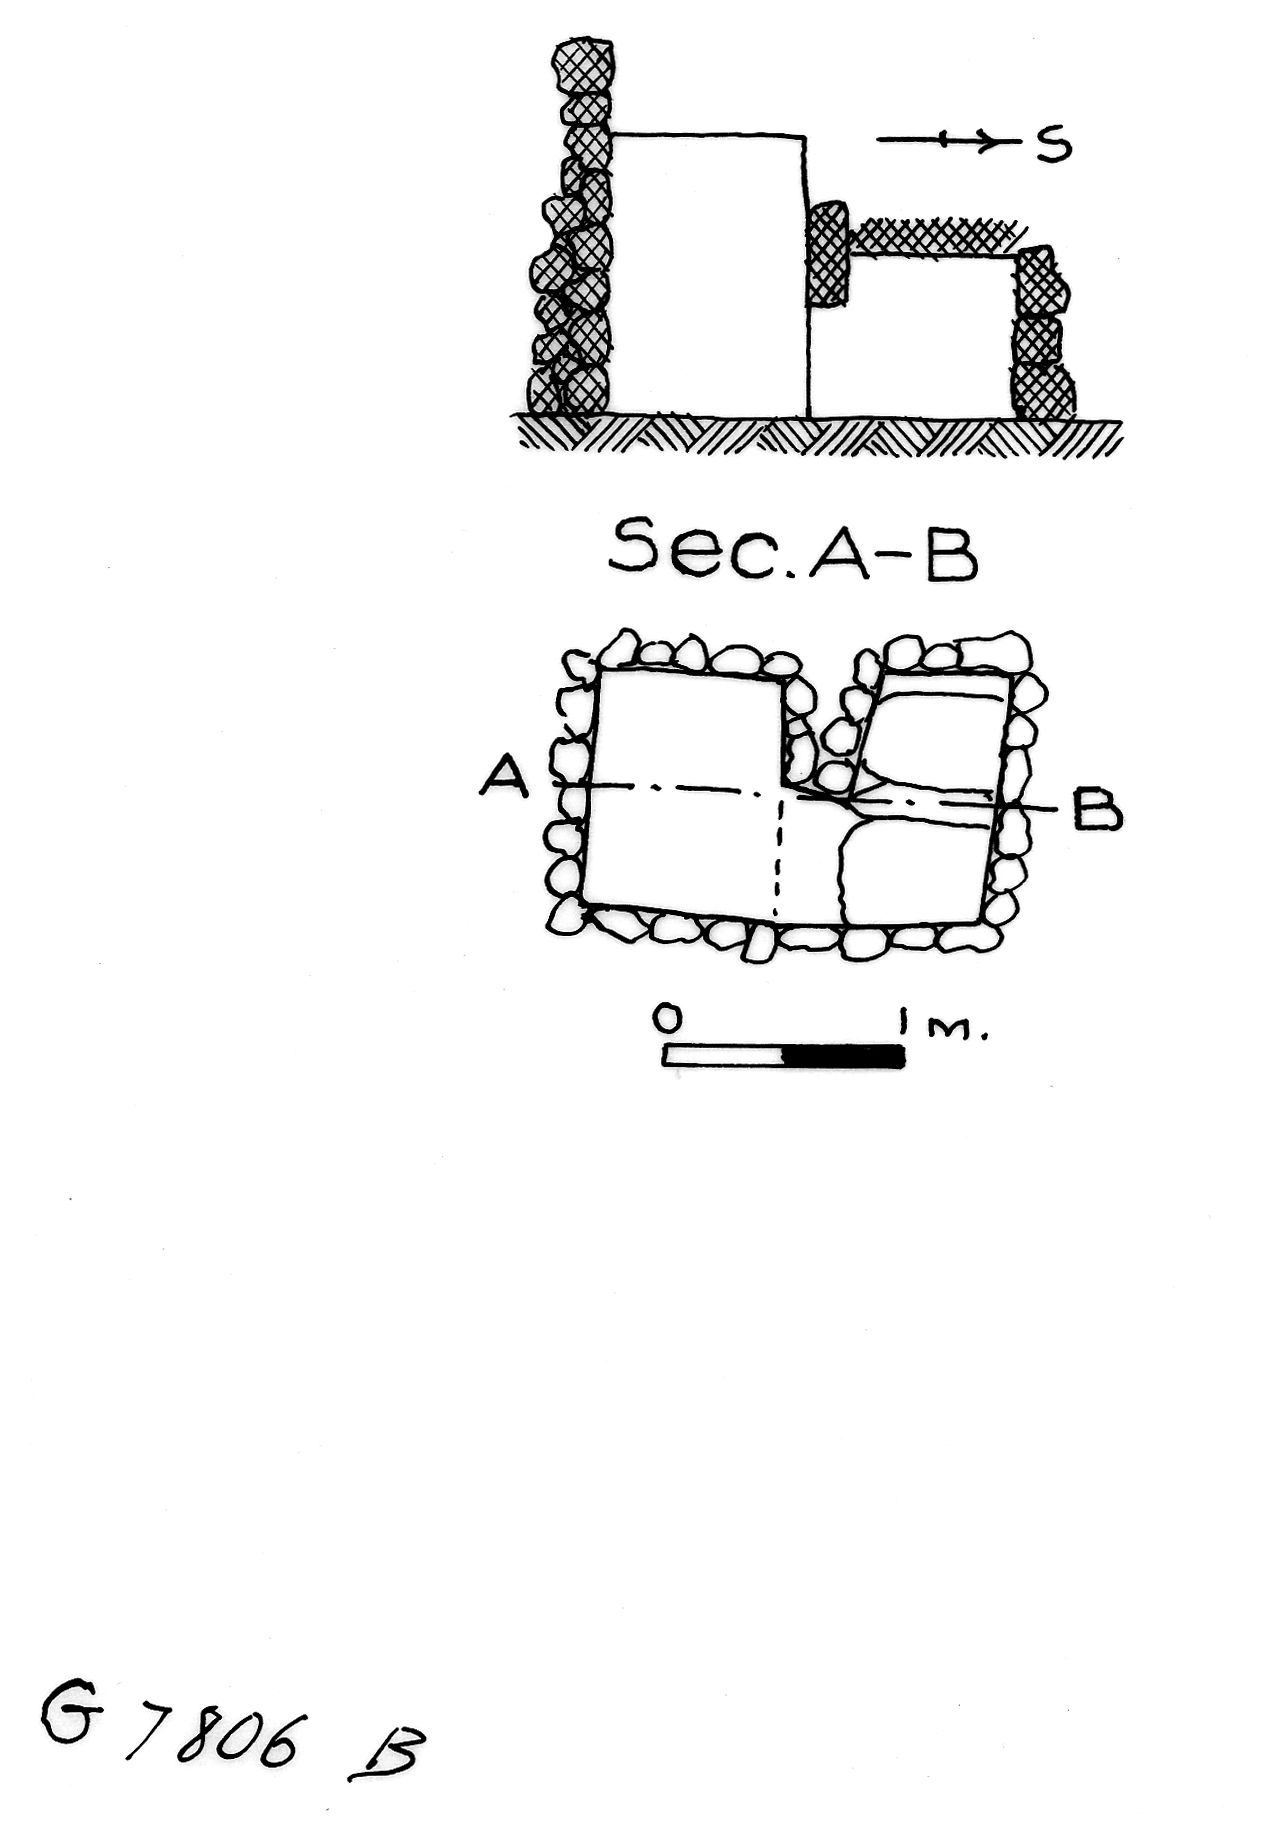 Maps and plans: G 7806, Shaft B